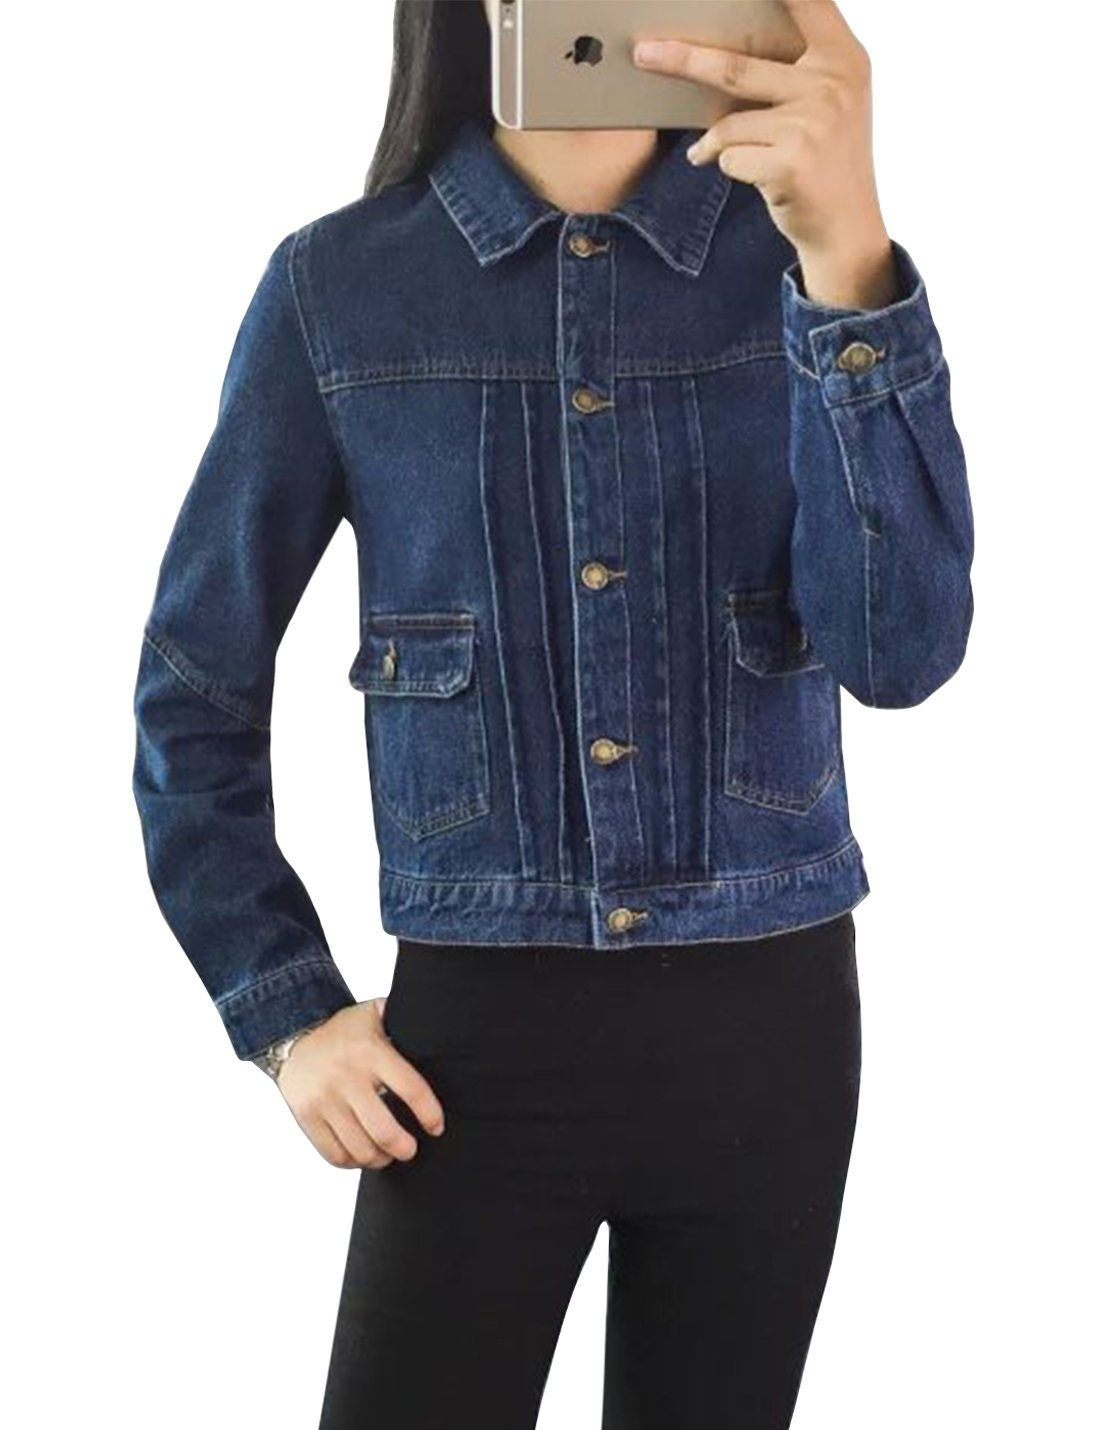 Tanming Women's Lapel Buttons up Outerwear Short Denim Jackets (Blue, Medium) by Tanming